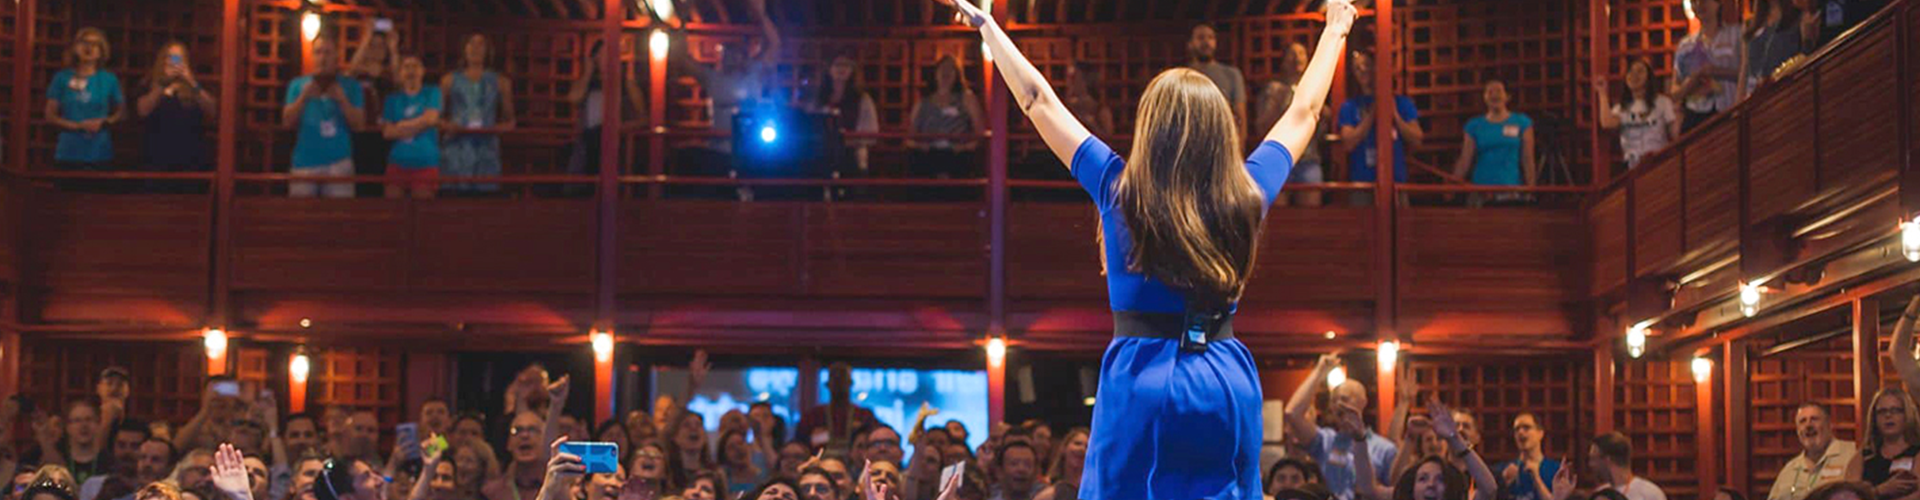 Woman in blue dress onstage with her hands up